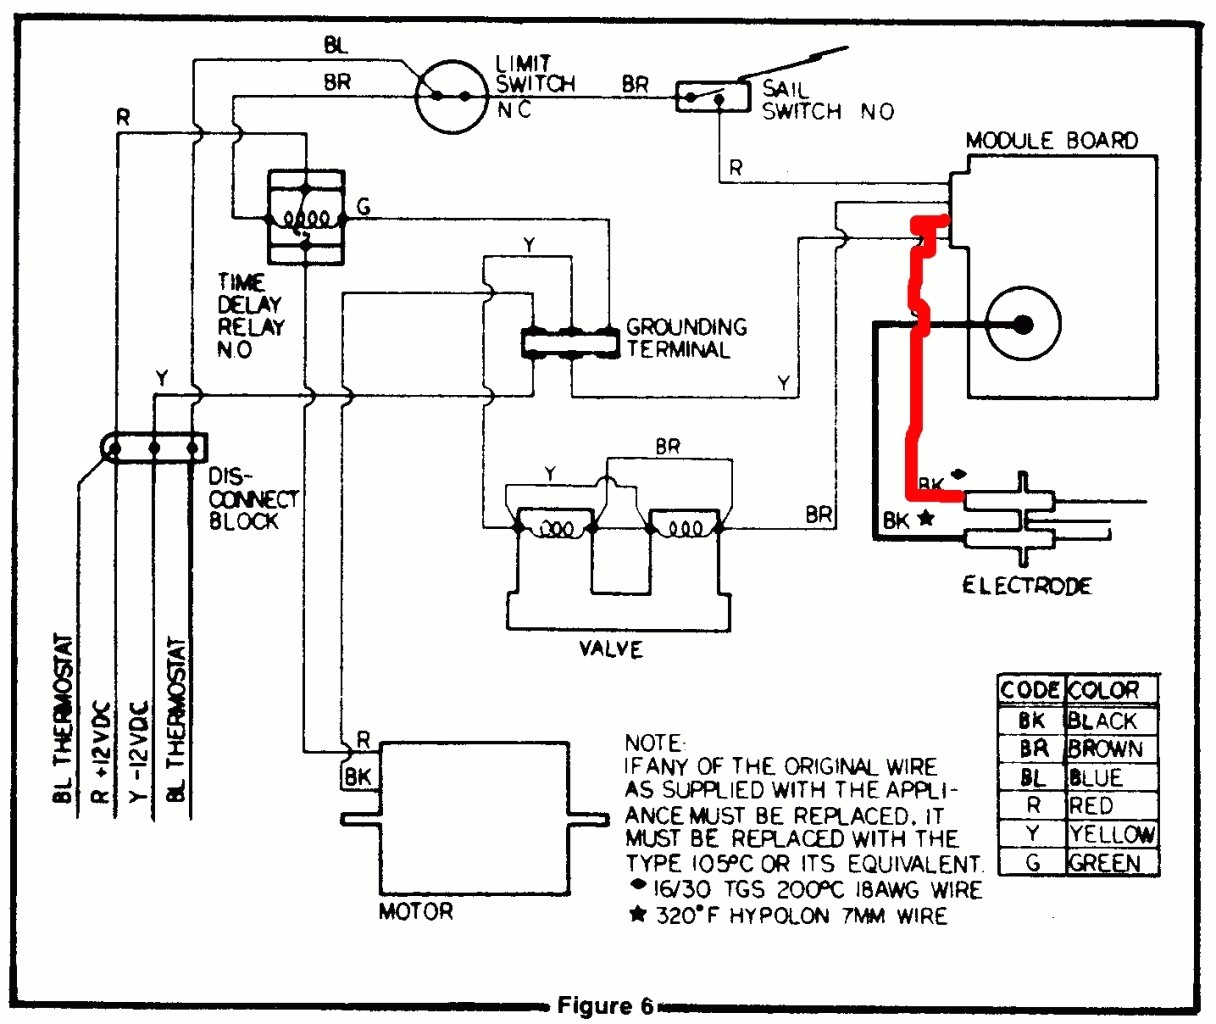 sf25 furnace wiring diagram for rv wiring diagram perfomance rv furnace wire diagram wiring diagram centre